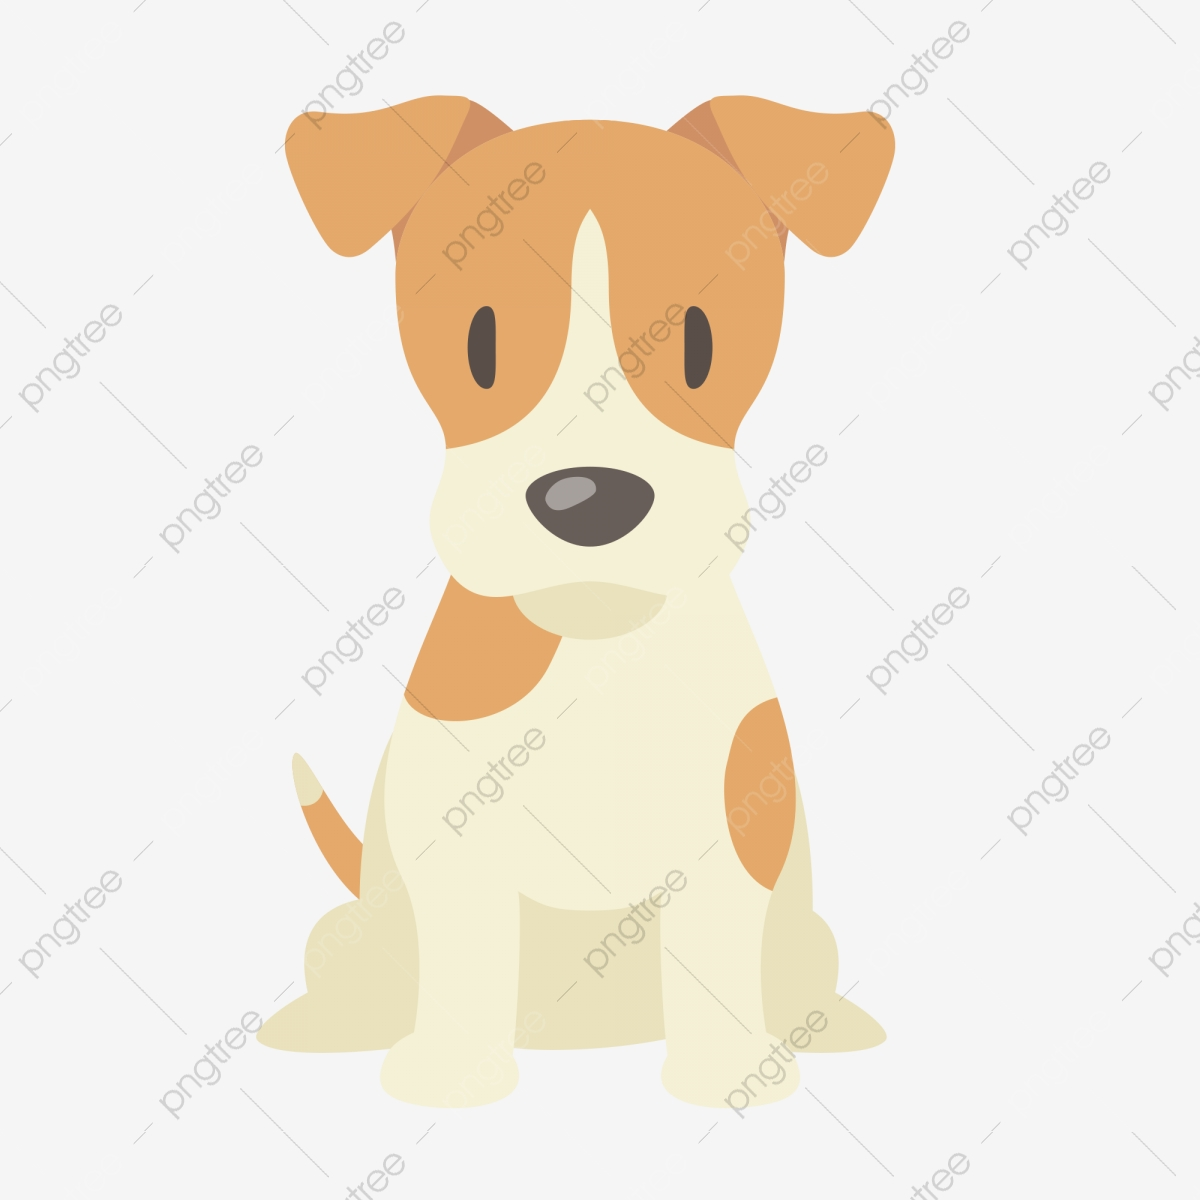 Dog Cartoon Dog Various Breeds Of Dogs Year Of The Dog 2018 Pet Loyalty Png And Vector With Transparent Background For Free Download